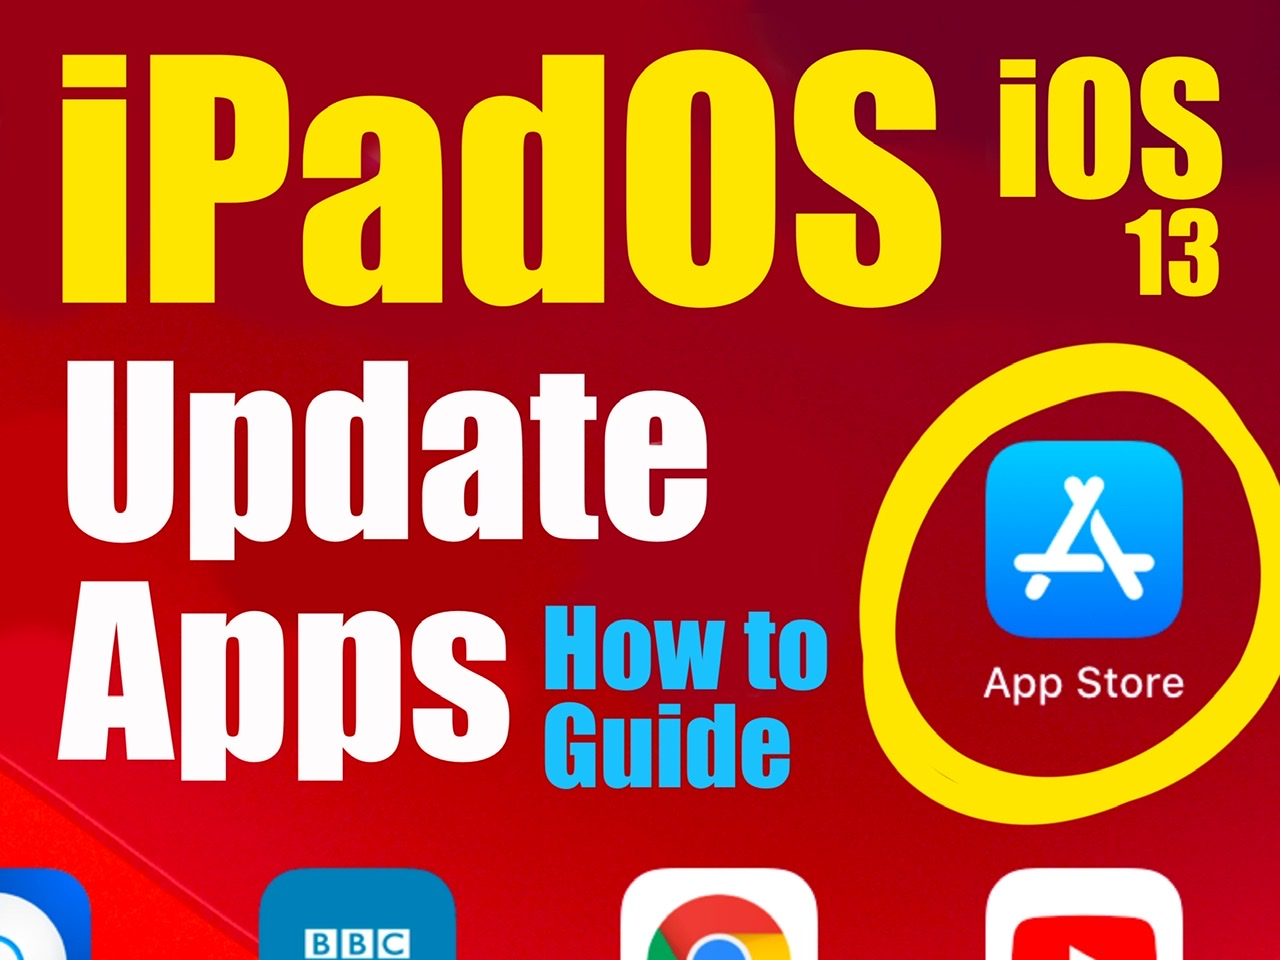 Update Apps in iPadOS and iOS13